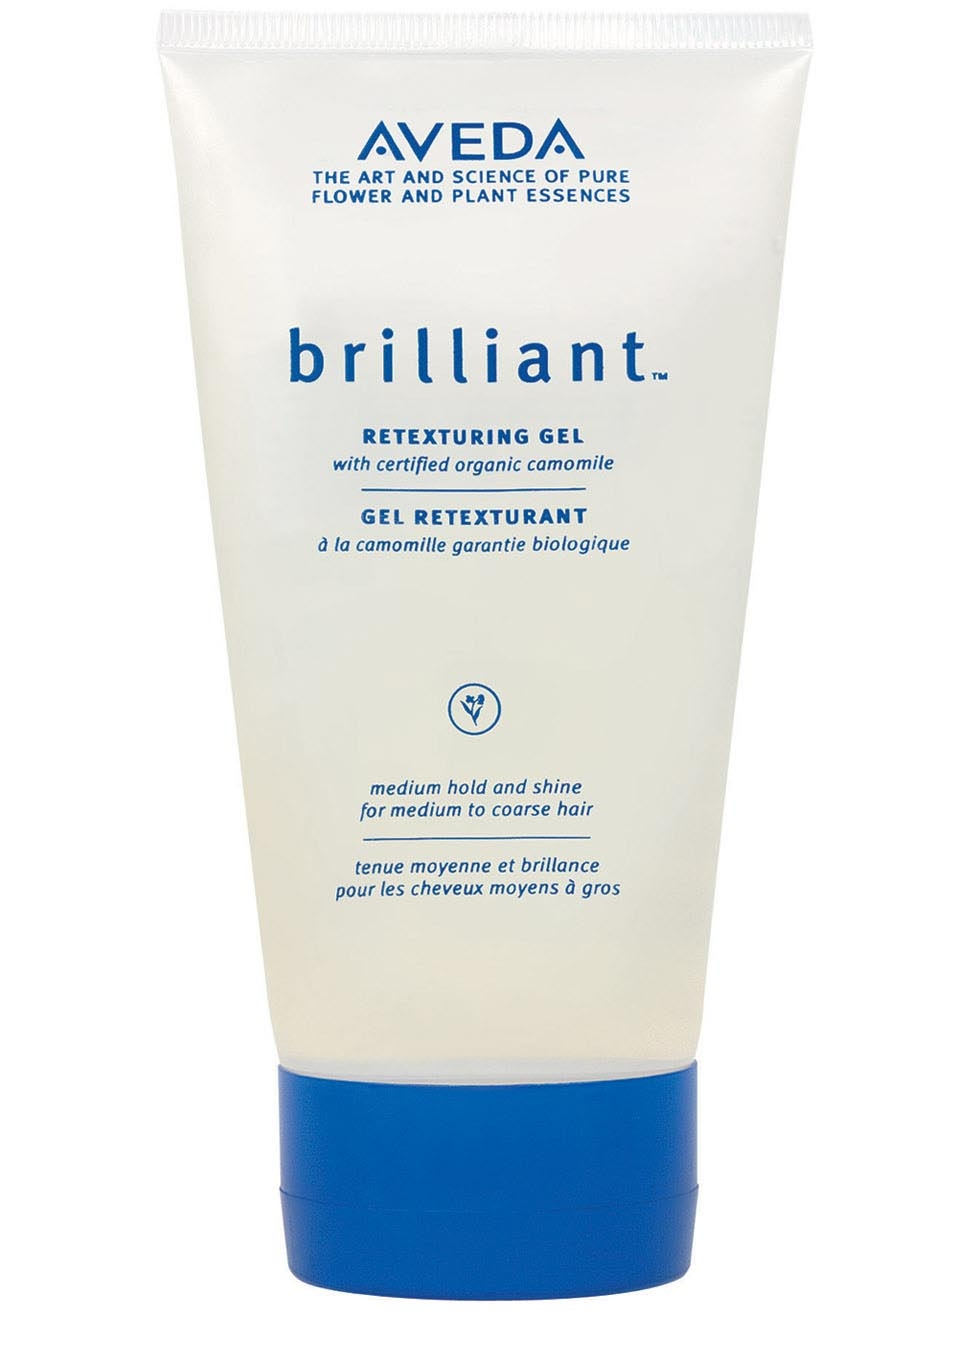 Brilliant™ Retexturing Gel 150ml